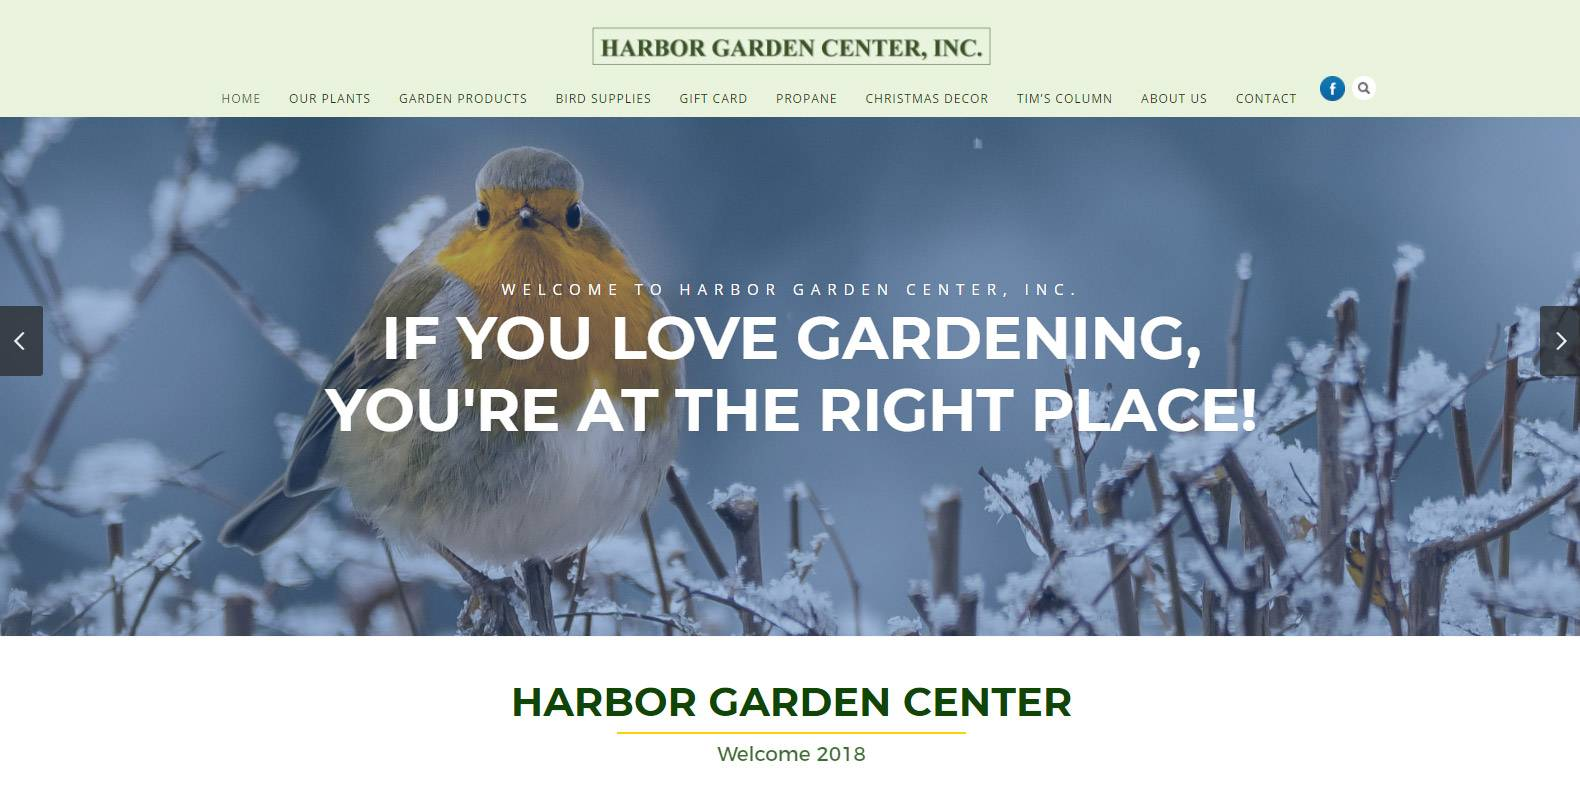 Harbor Garden Center